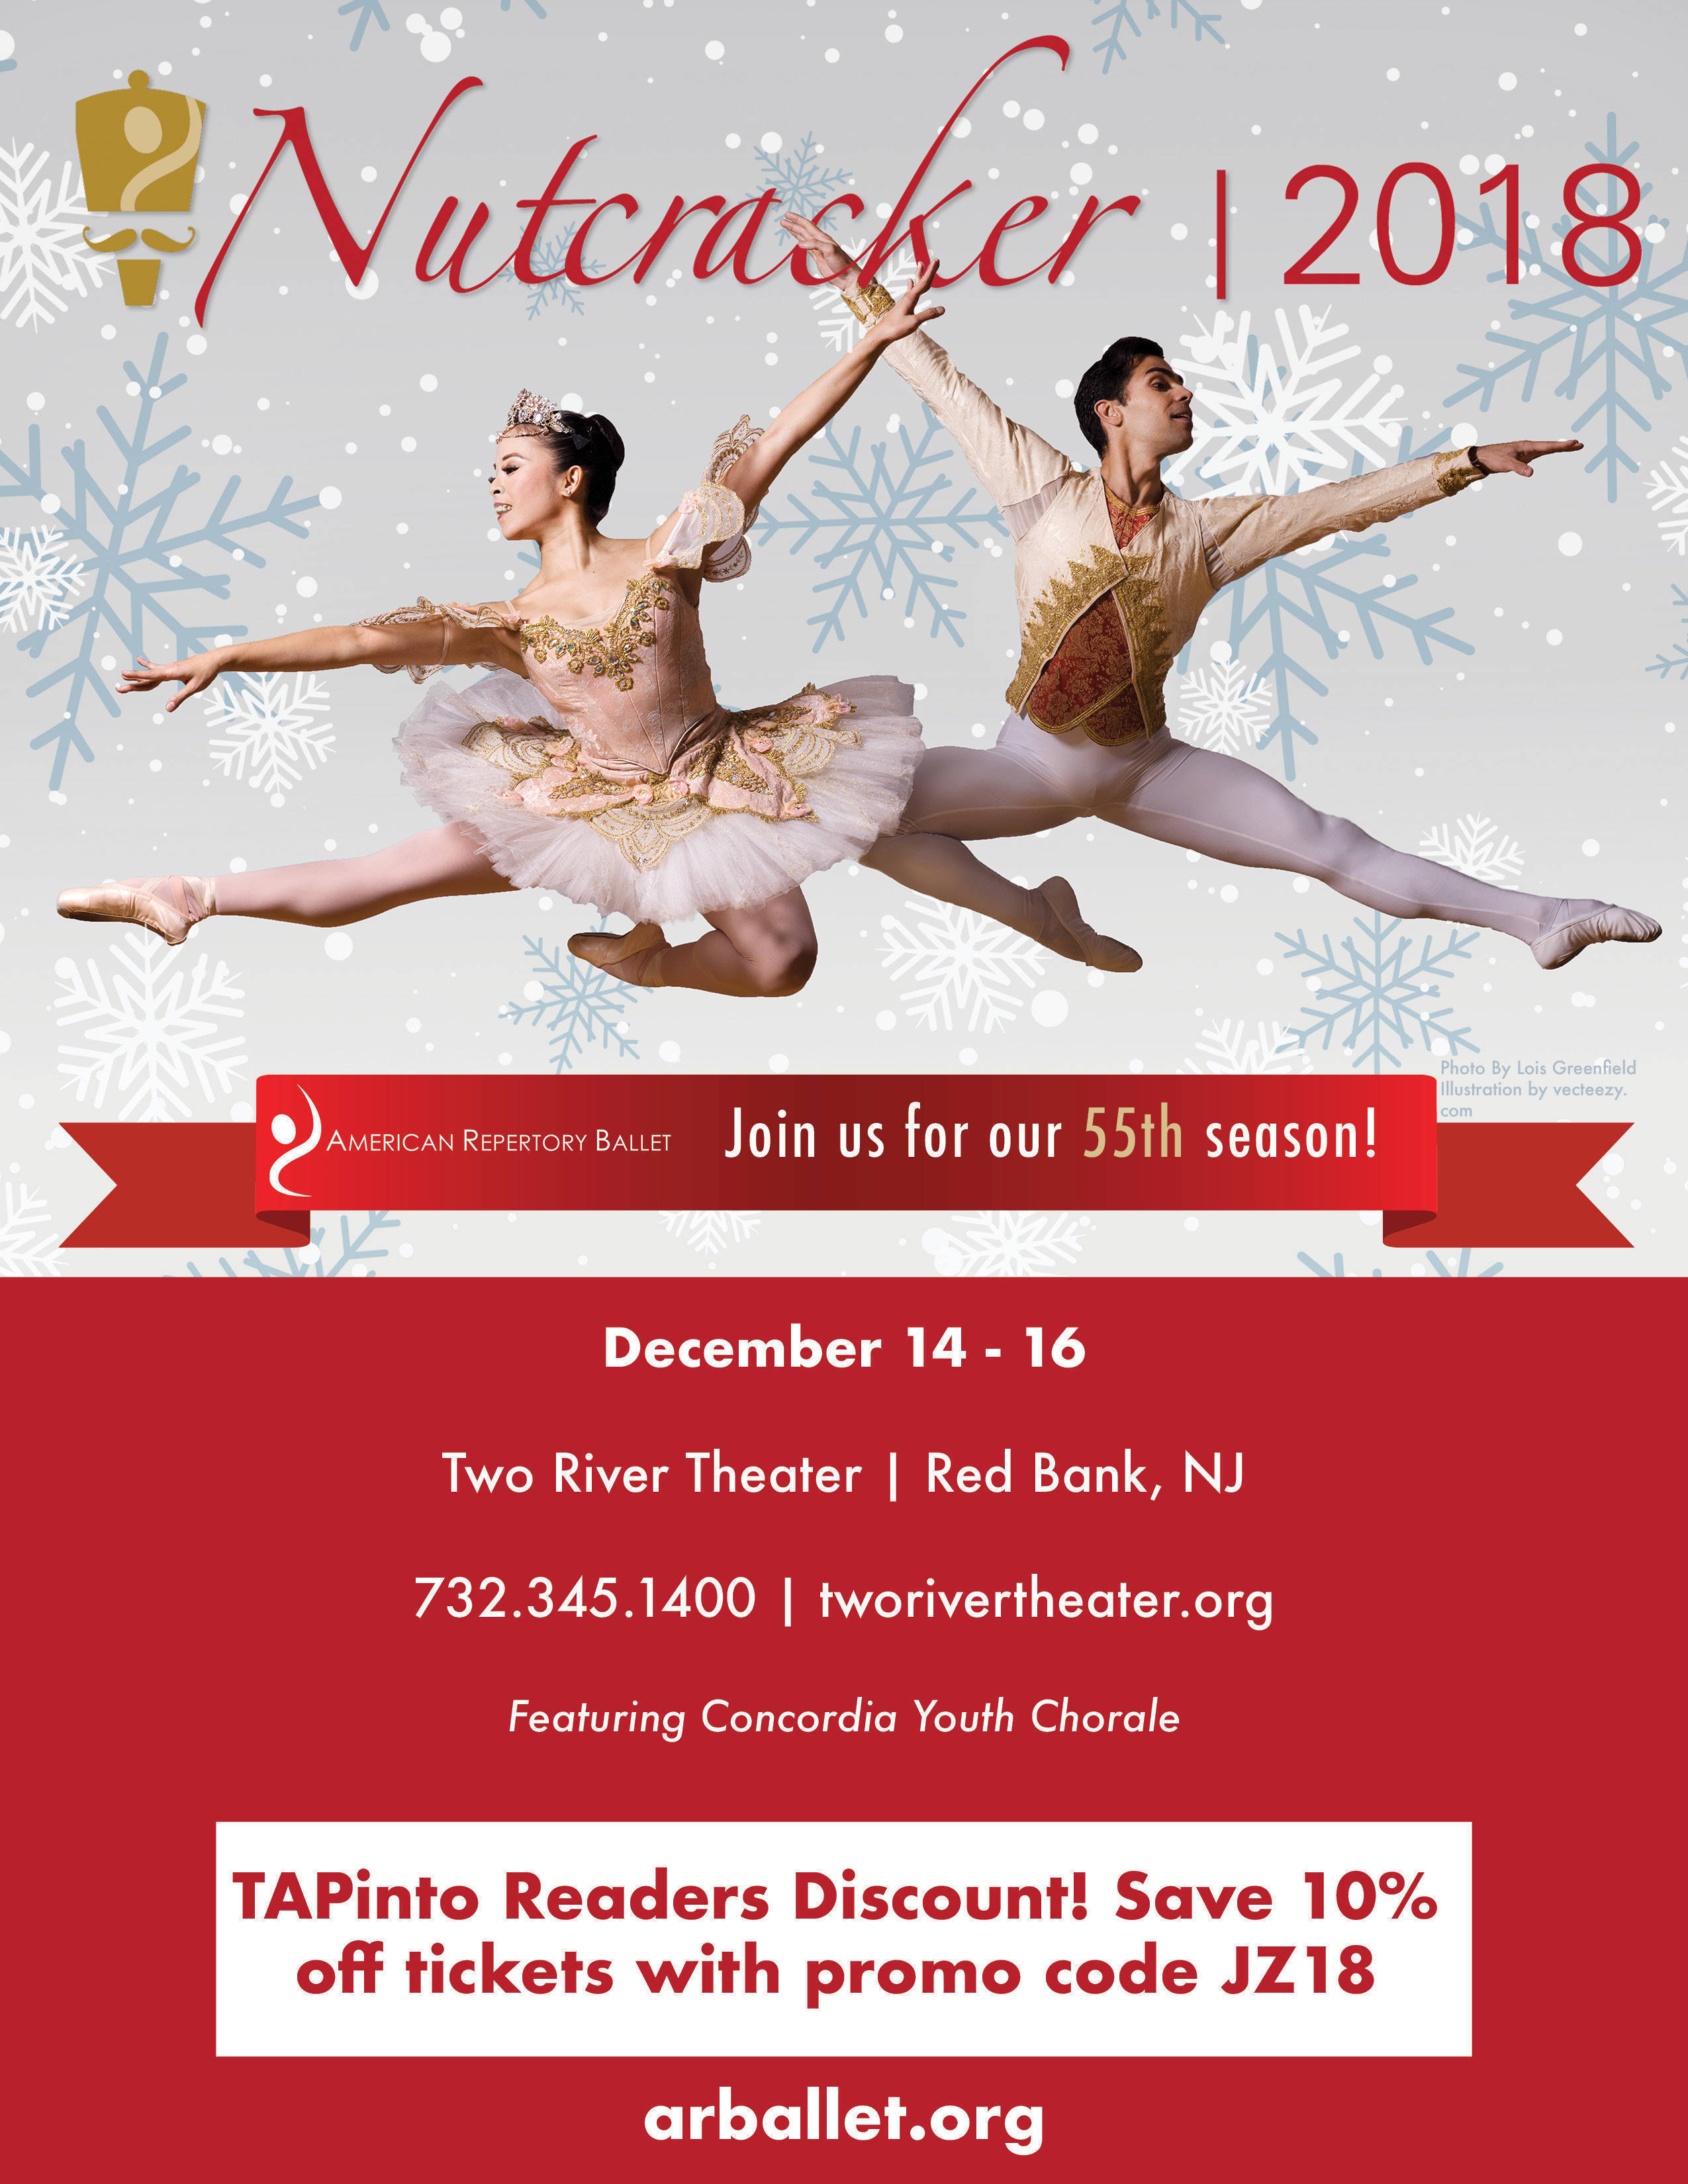 Groups of 10 or more receive the greatest discounts! Moscow Ballet's Great Russian Nutcracker is 2 hours long including a 20 minute intermission. Latecomers will be seated 20 minutes after the performance starts. Everyone, regardless of age, must have a ticket. Click to find Moscow Ballet Performances in your city.